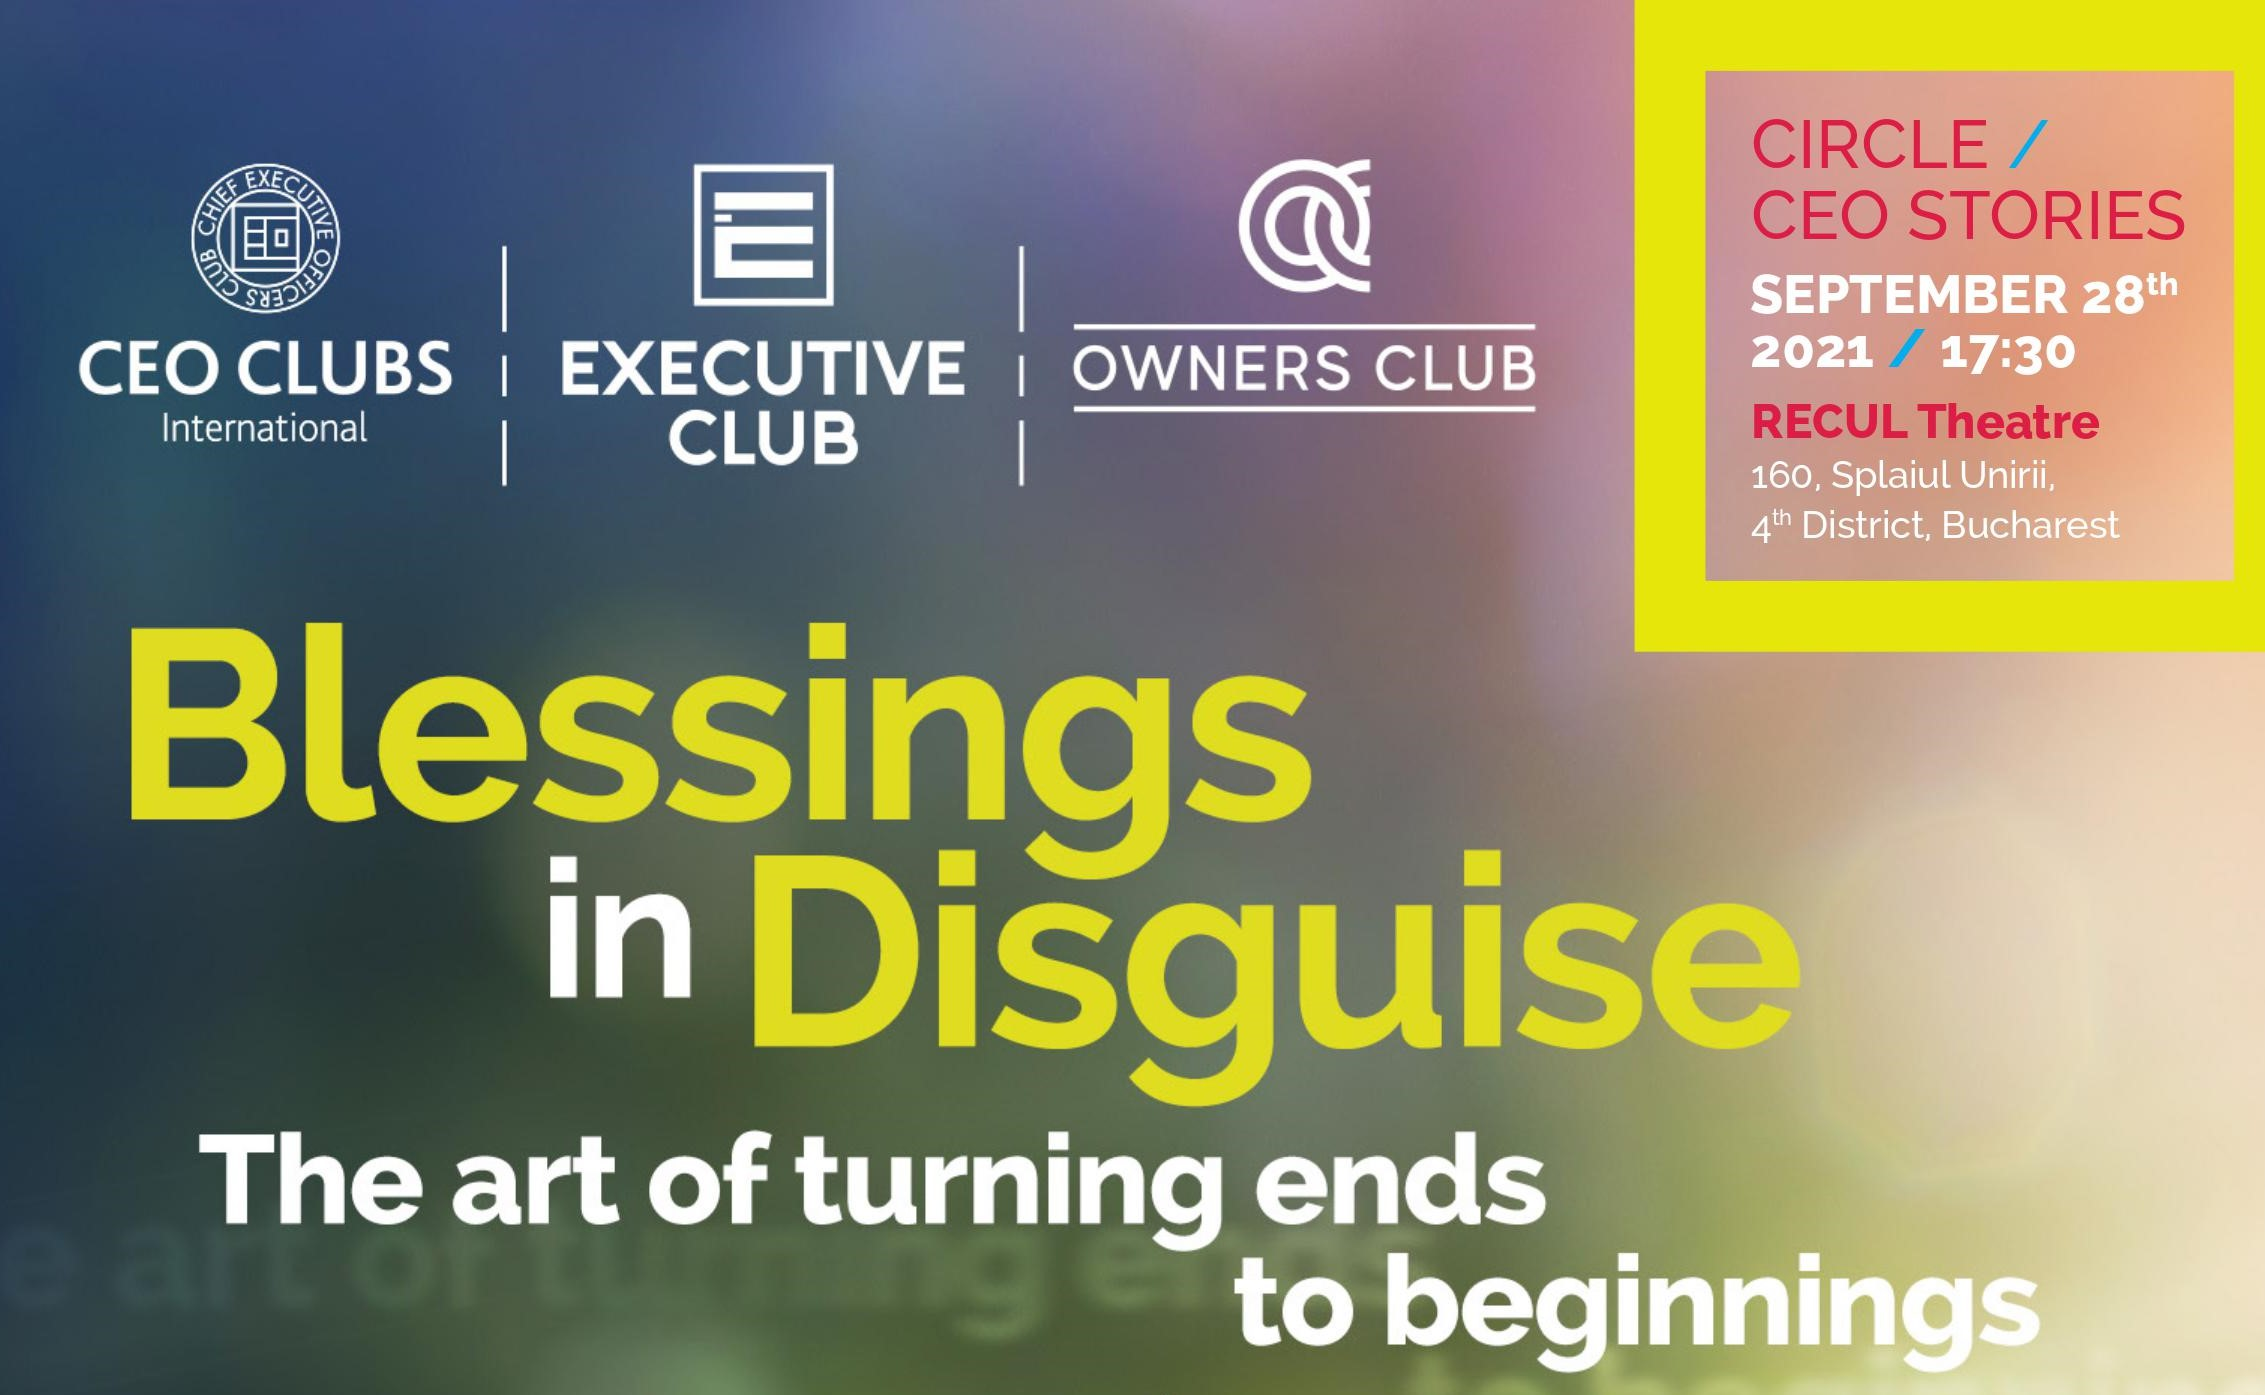 """CEO Stories: """"Blessings in Disguise - The art of turning ends to beginnings"""""""